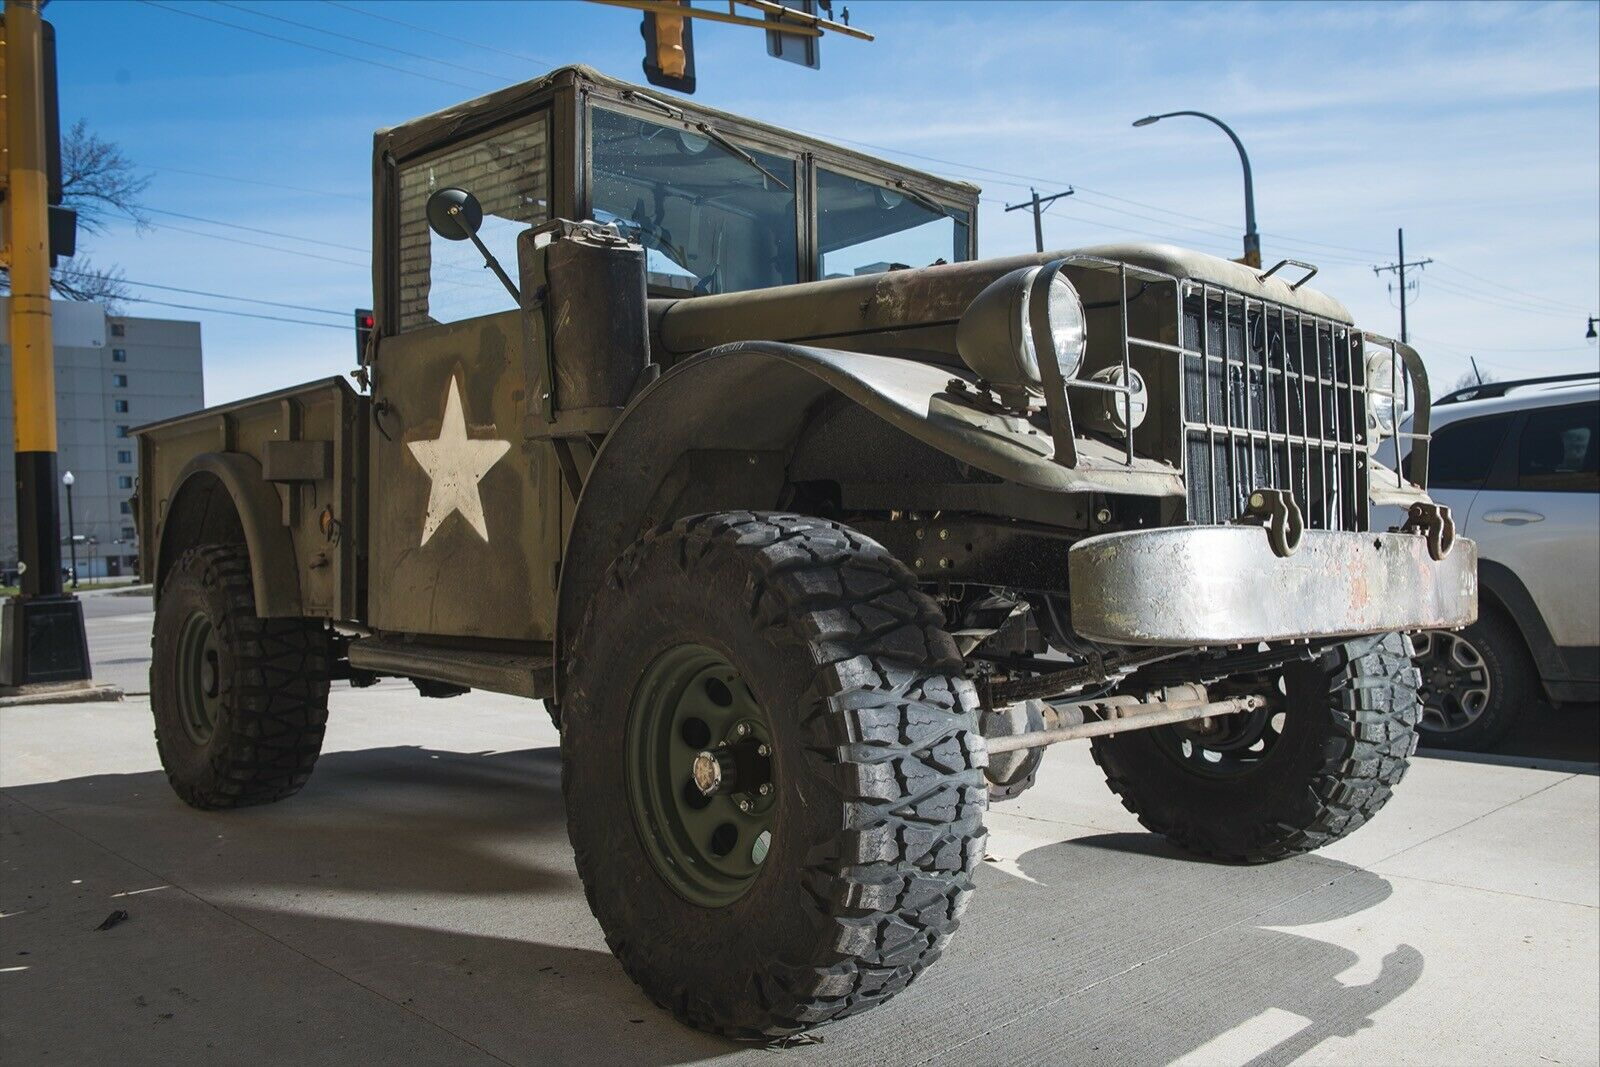 vintage 1955 Dodge M37 Power Wagon military for saleMilitary vehicles for sale